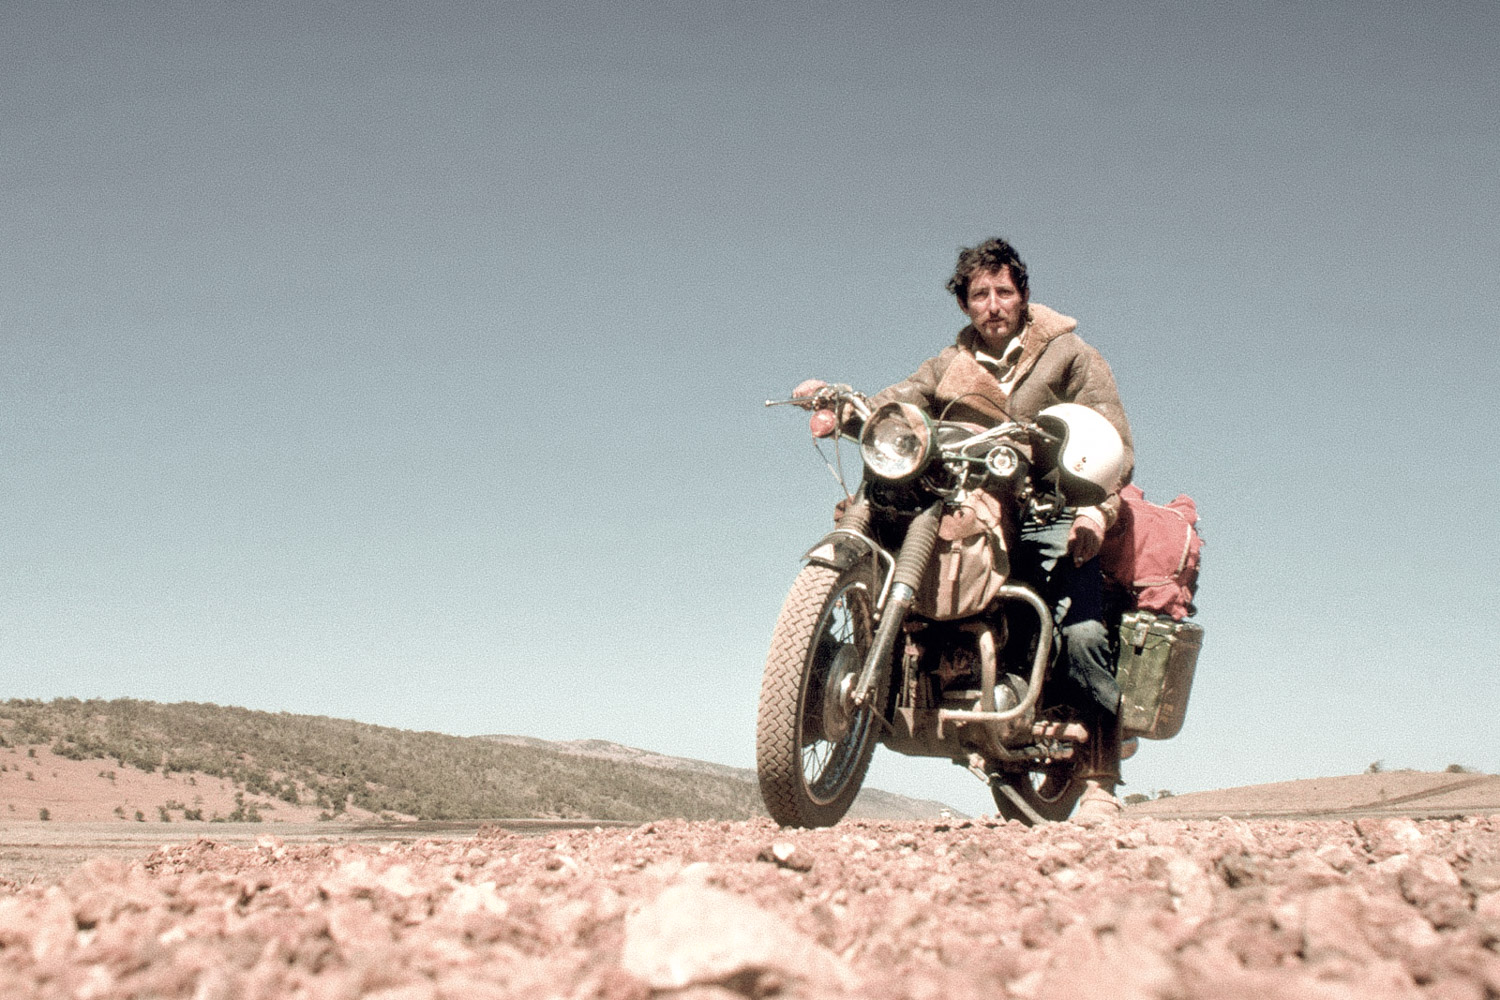 Ted Simon on his Triumph Motorcycle